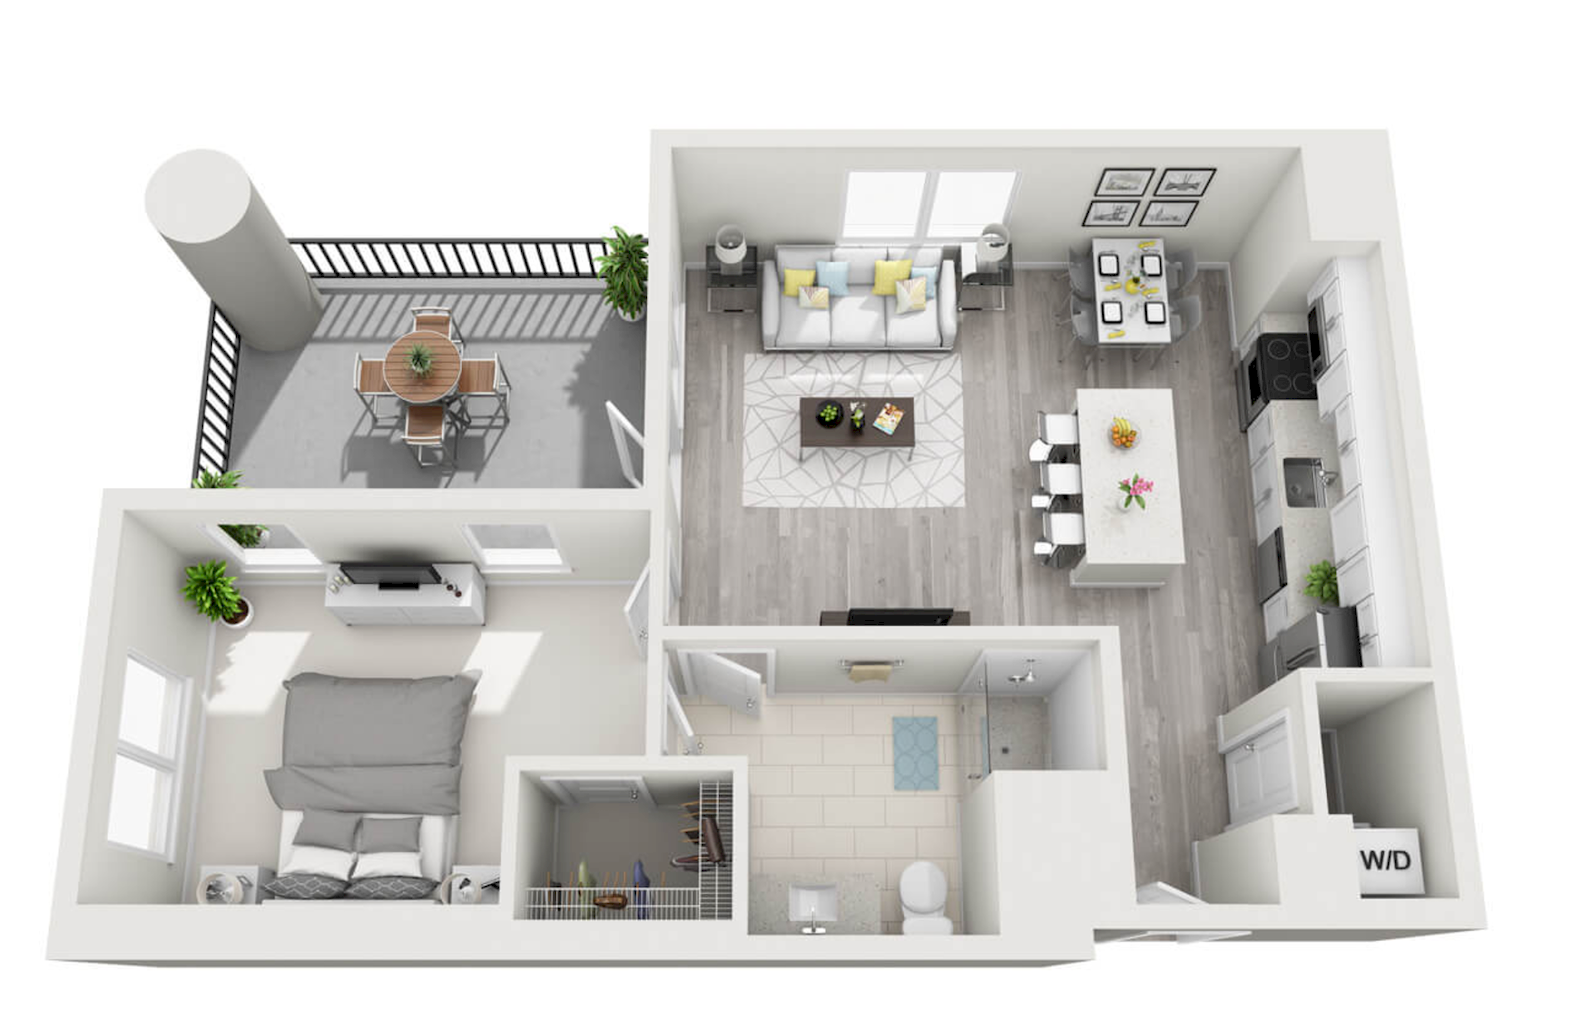 100 Small Studio Apartment Layout Design Ideas Home Design Apartment Layout Sims House Plans Studio Apartment Layout